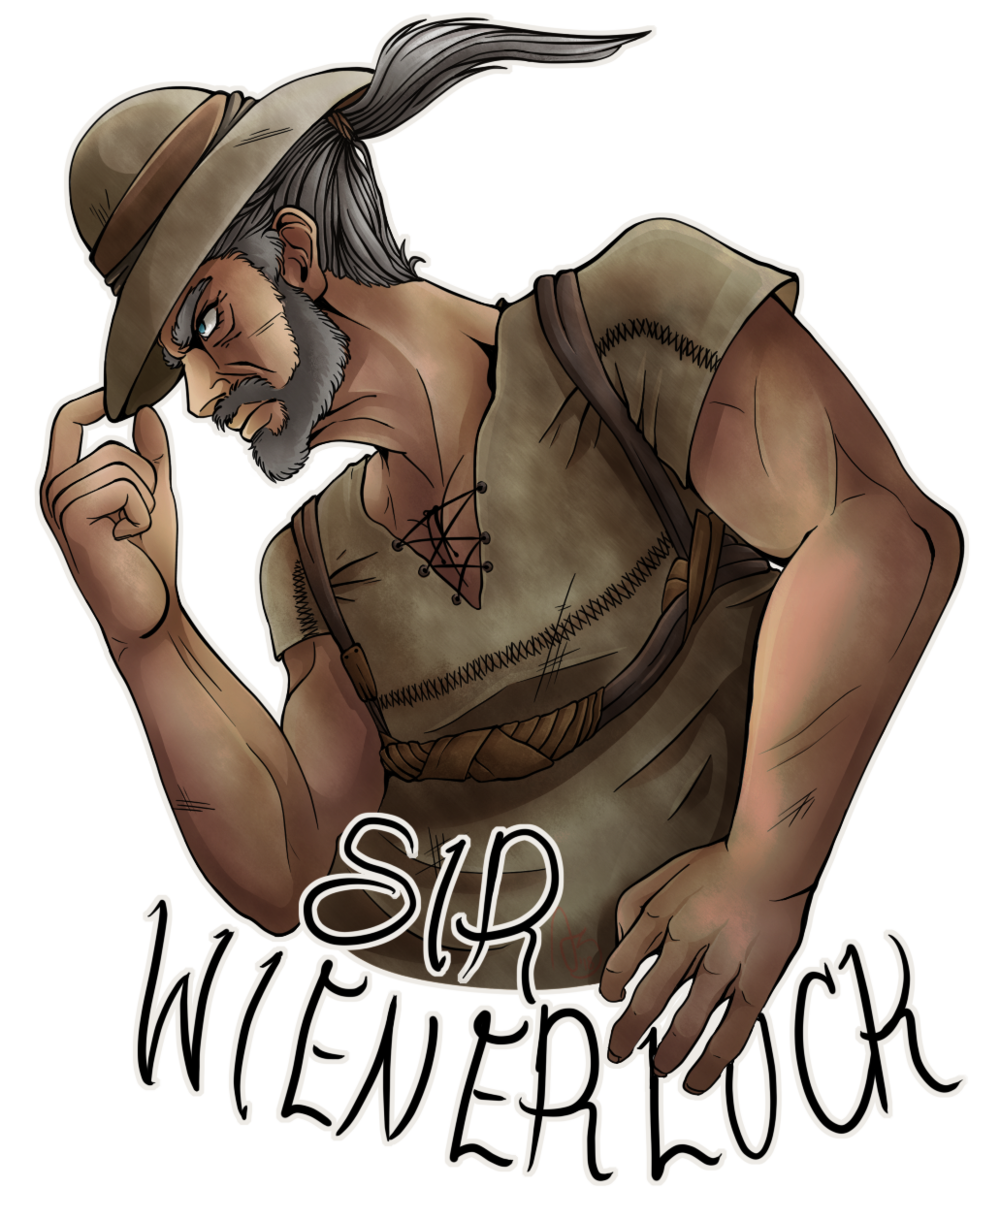 Sir Wienerlock by    Kaigsly